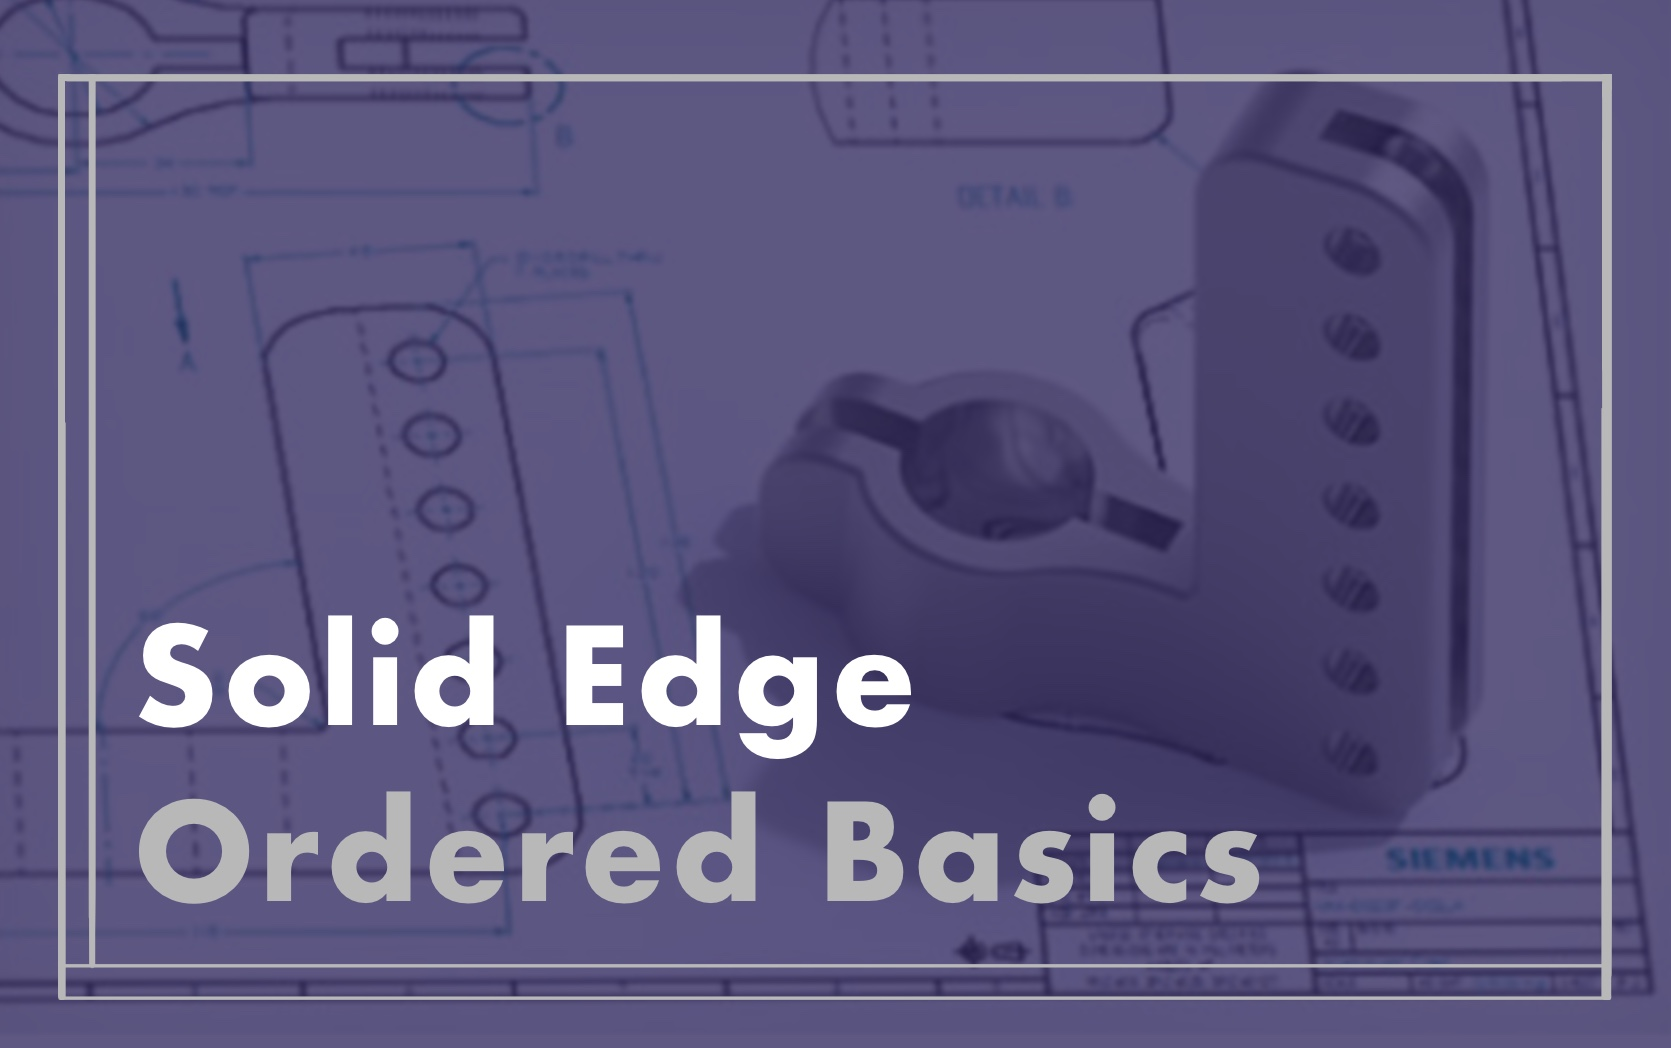 Solid Edge Ordered Basics course image